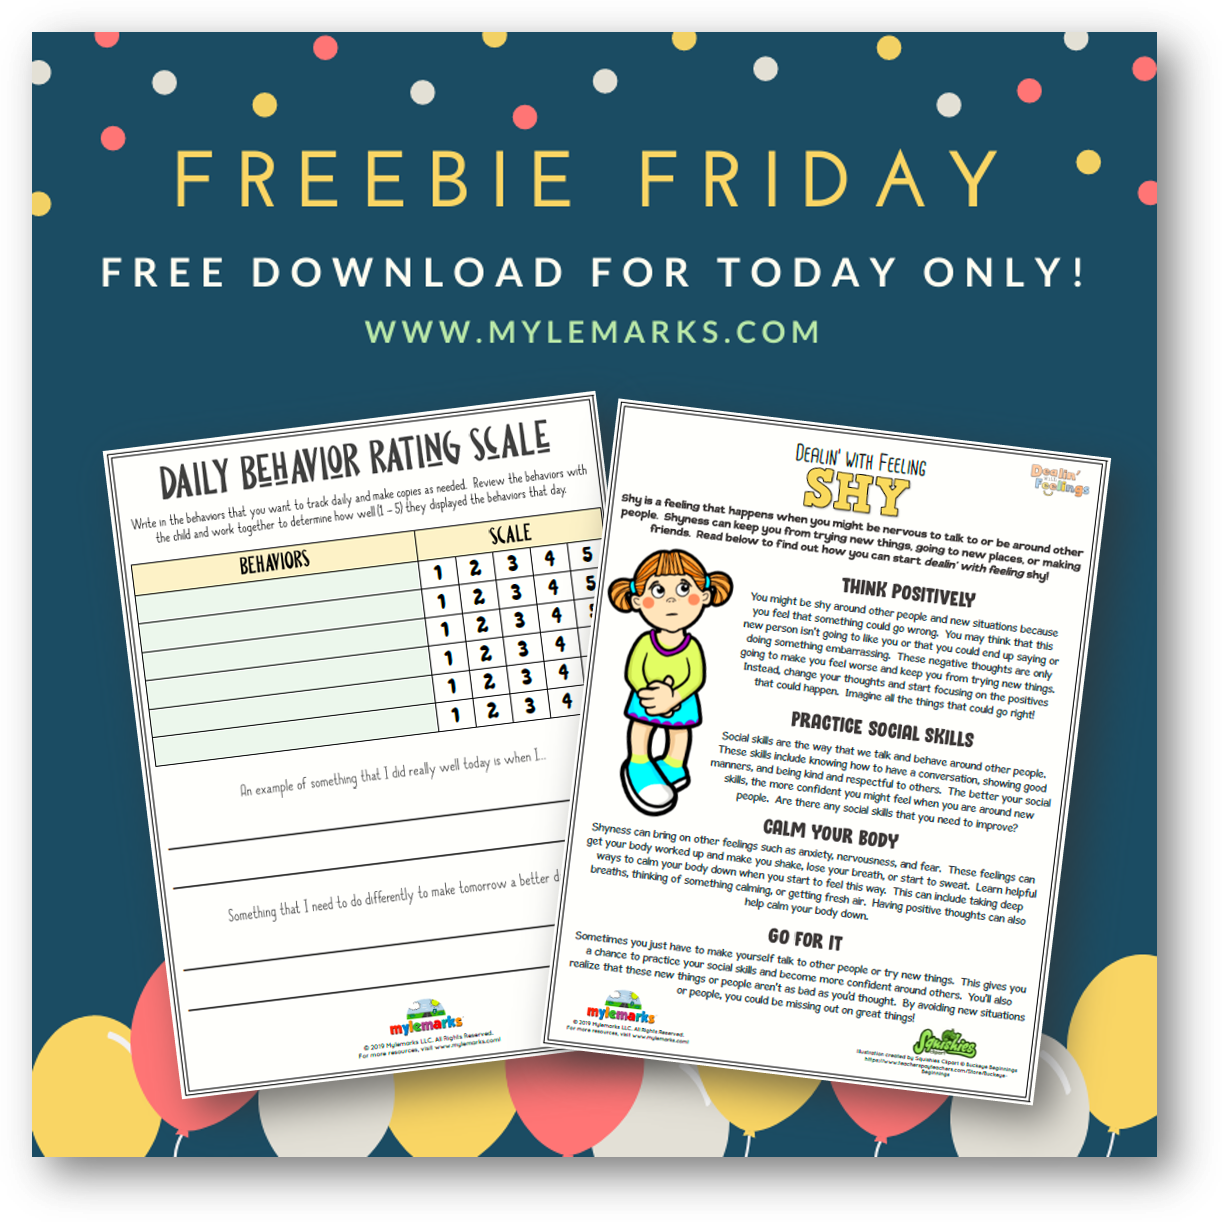 2 Free Therapy Worksheets From Mylemarks For Today Only